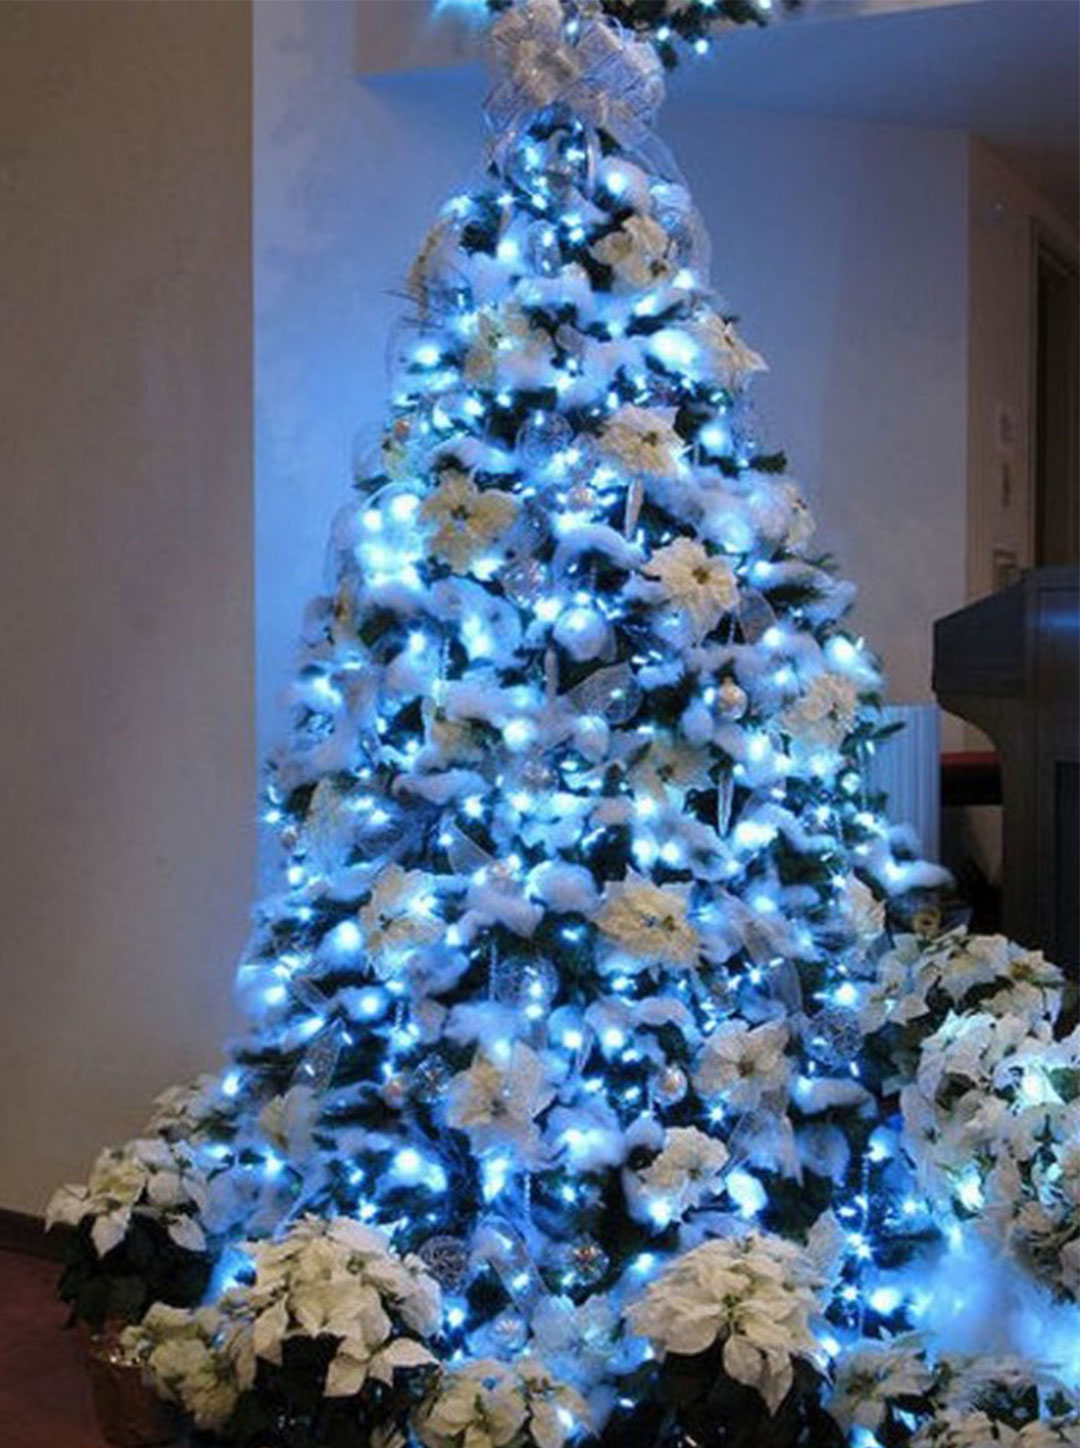 29 inspirational christmas tree decorating ideas 2017 2018 with images happy new year 2018 - Christmas tree decorating best ideas ...